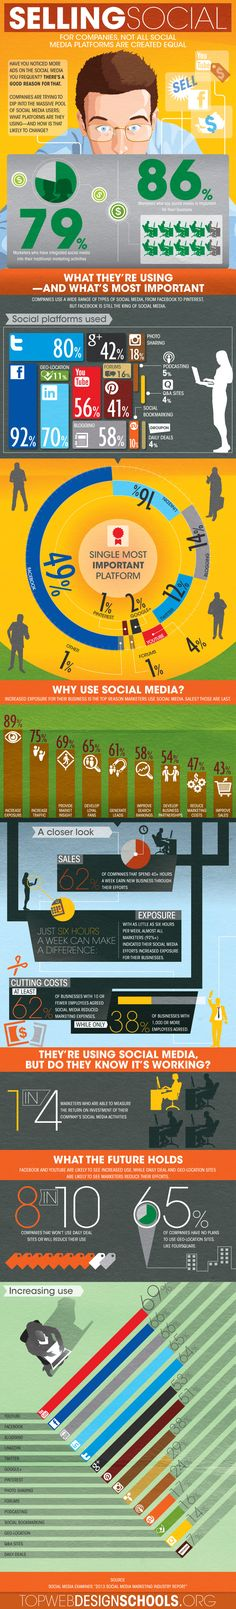 How Businesses Use Social Media